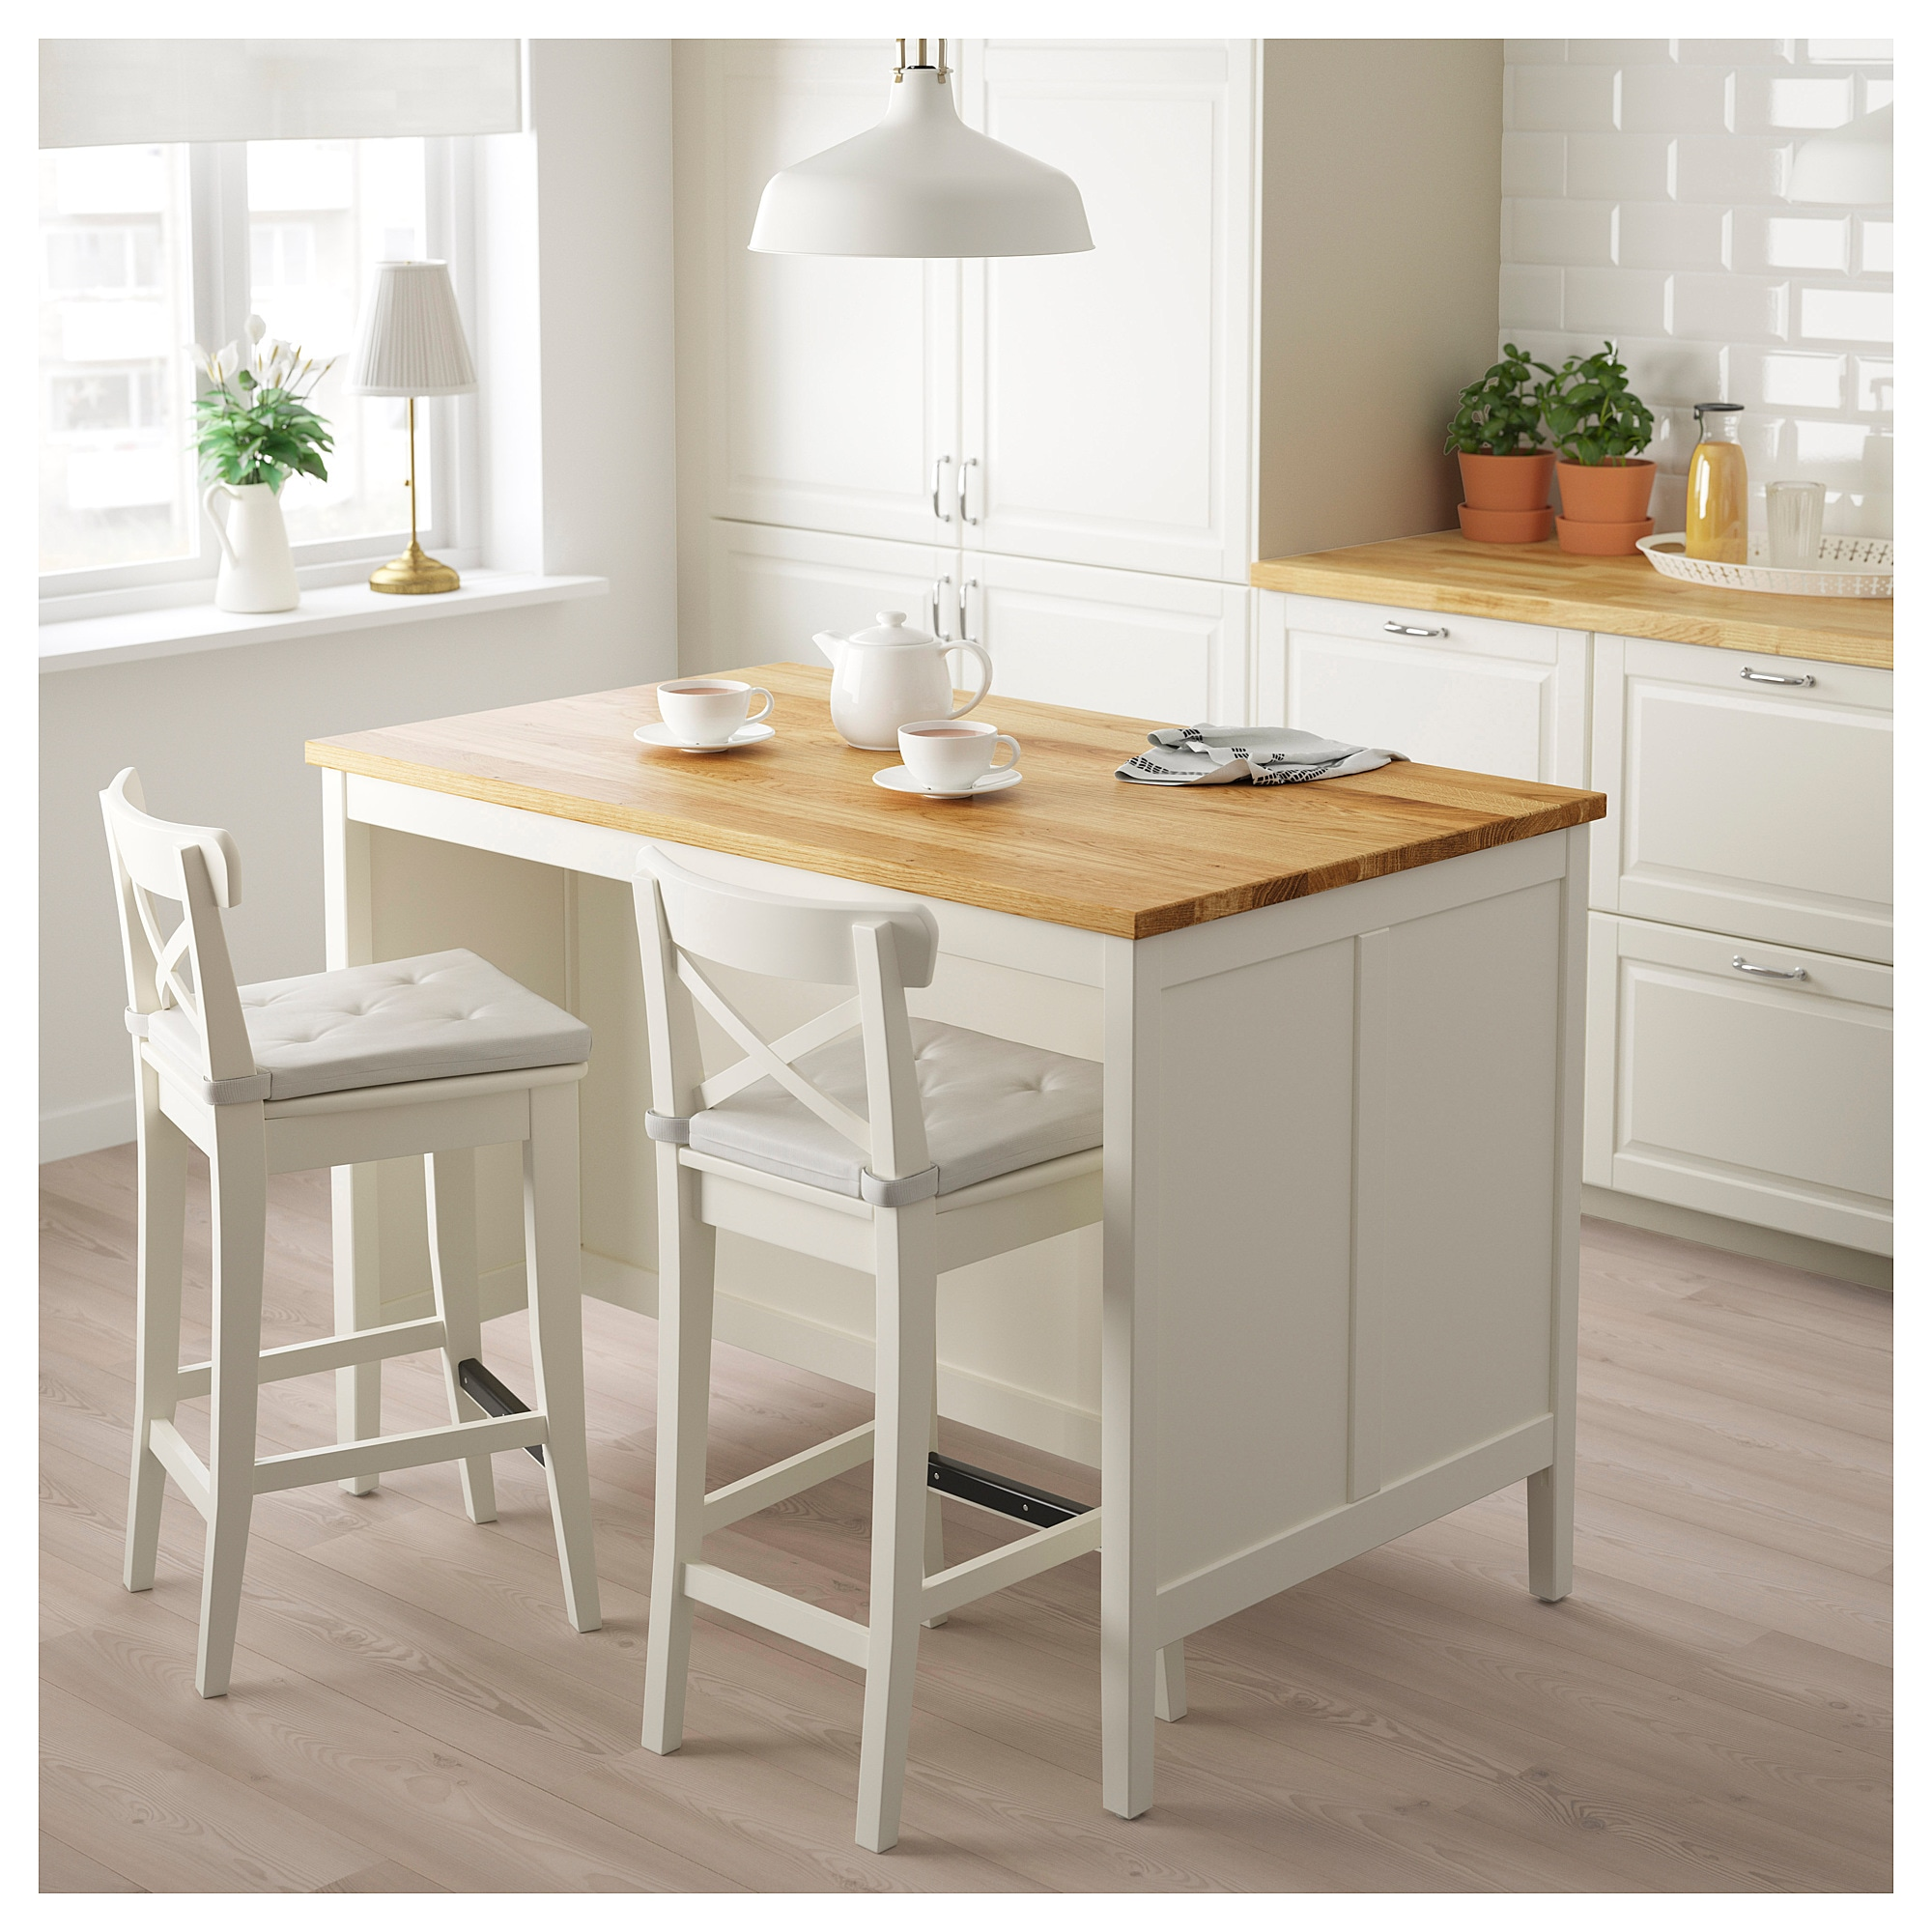 Stunning Isole Per Cucina Ikea Contemporary - Lepicentre.info ...